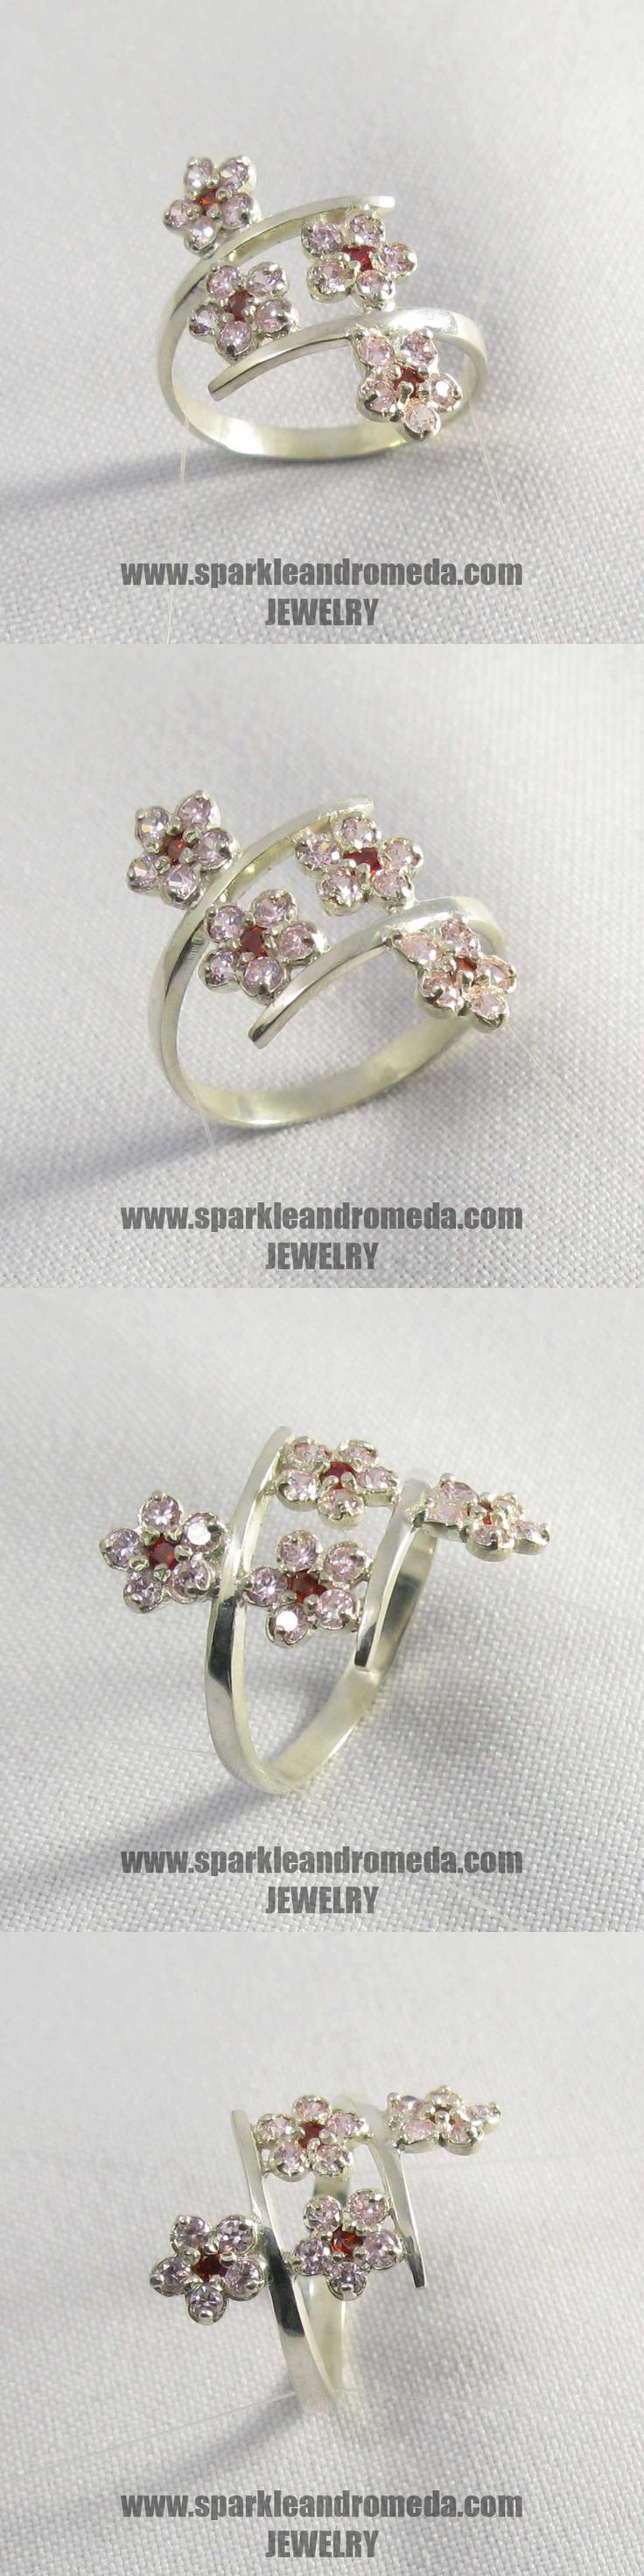 Sterling 925 silver ring with 4 round 2 mm red almandine color and 20 round 2 mm pink morganite color cubic zirconia gemstones.